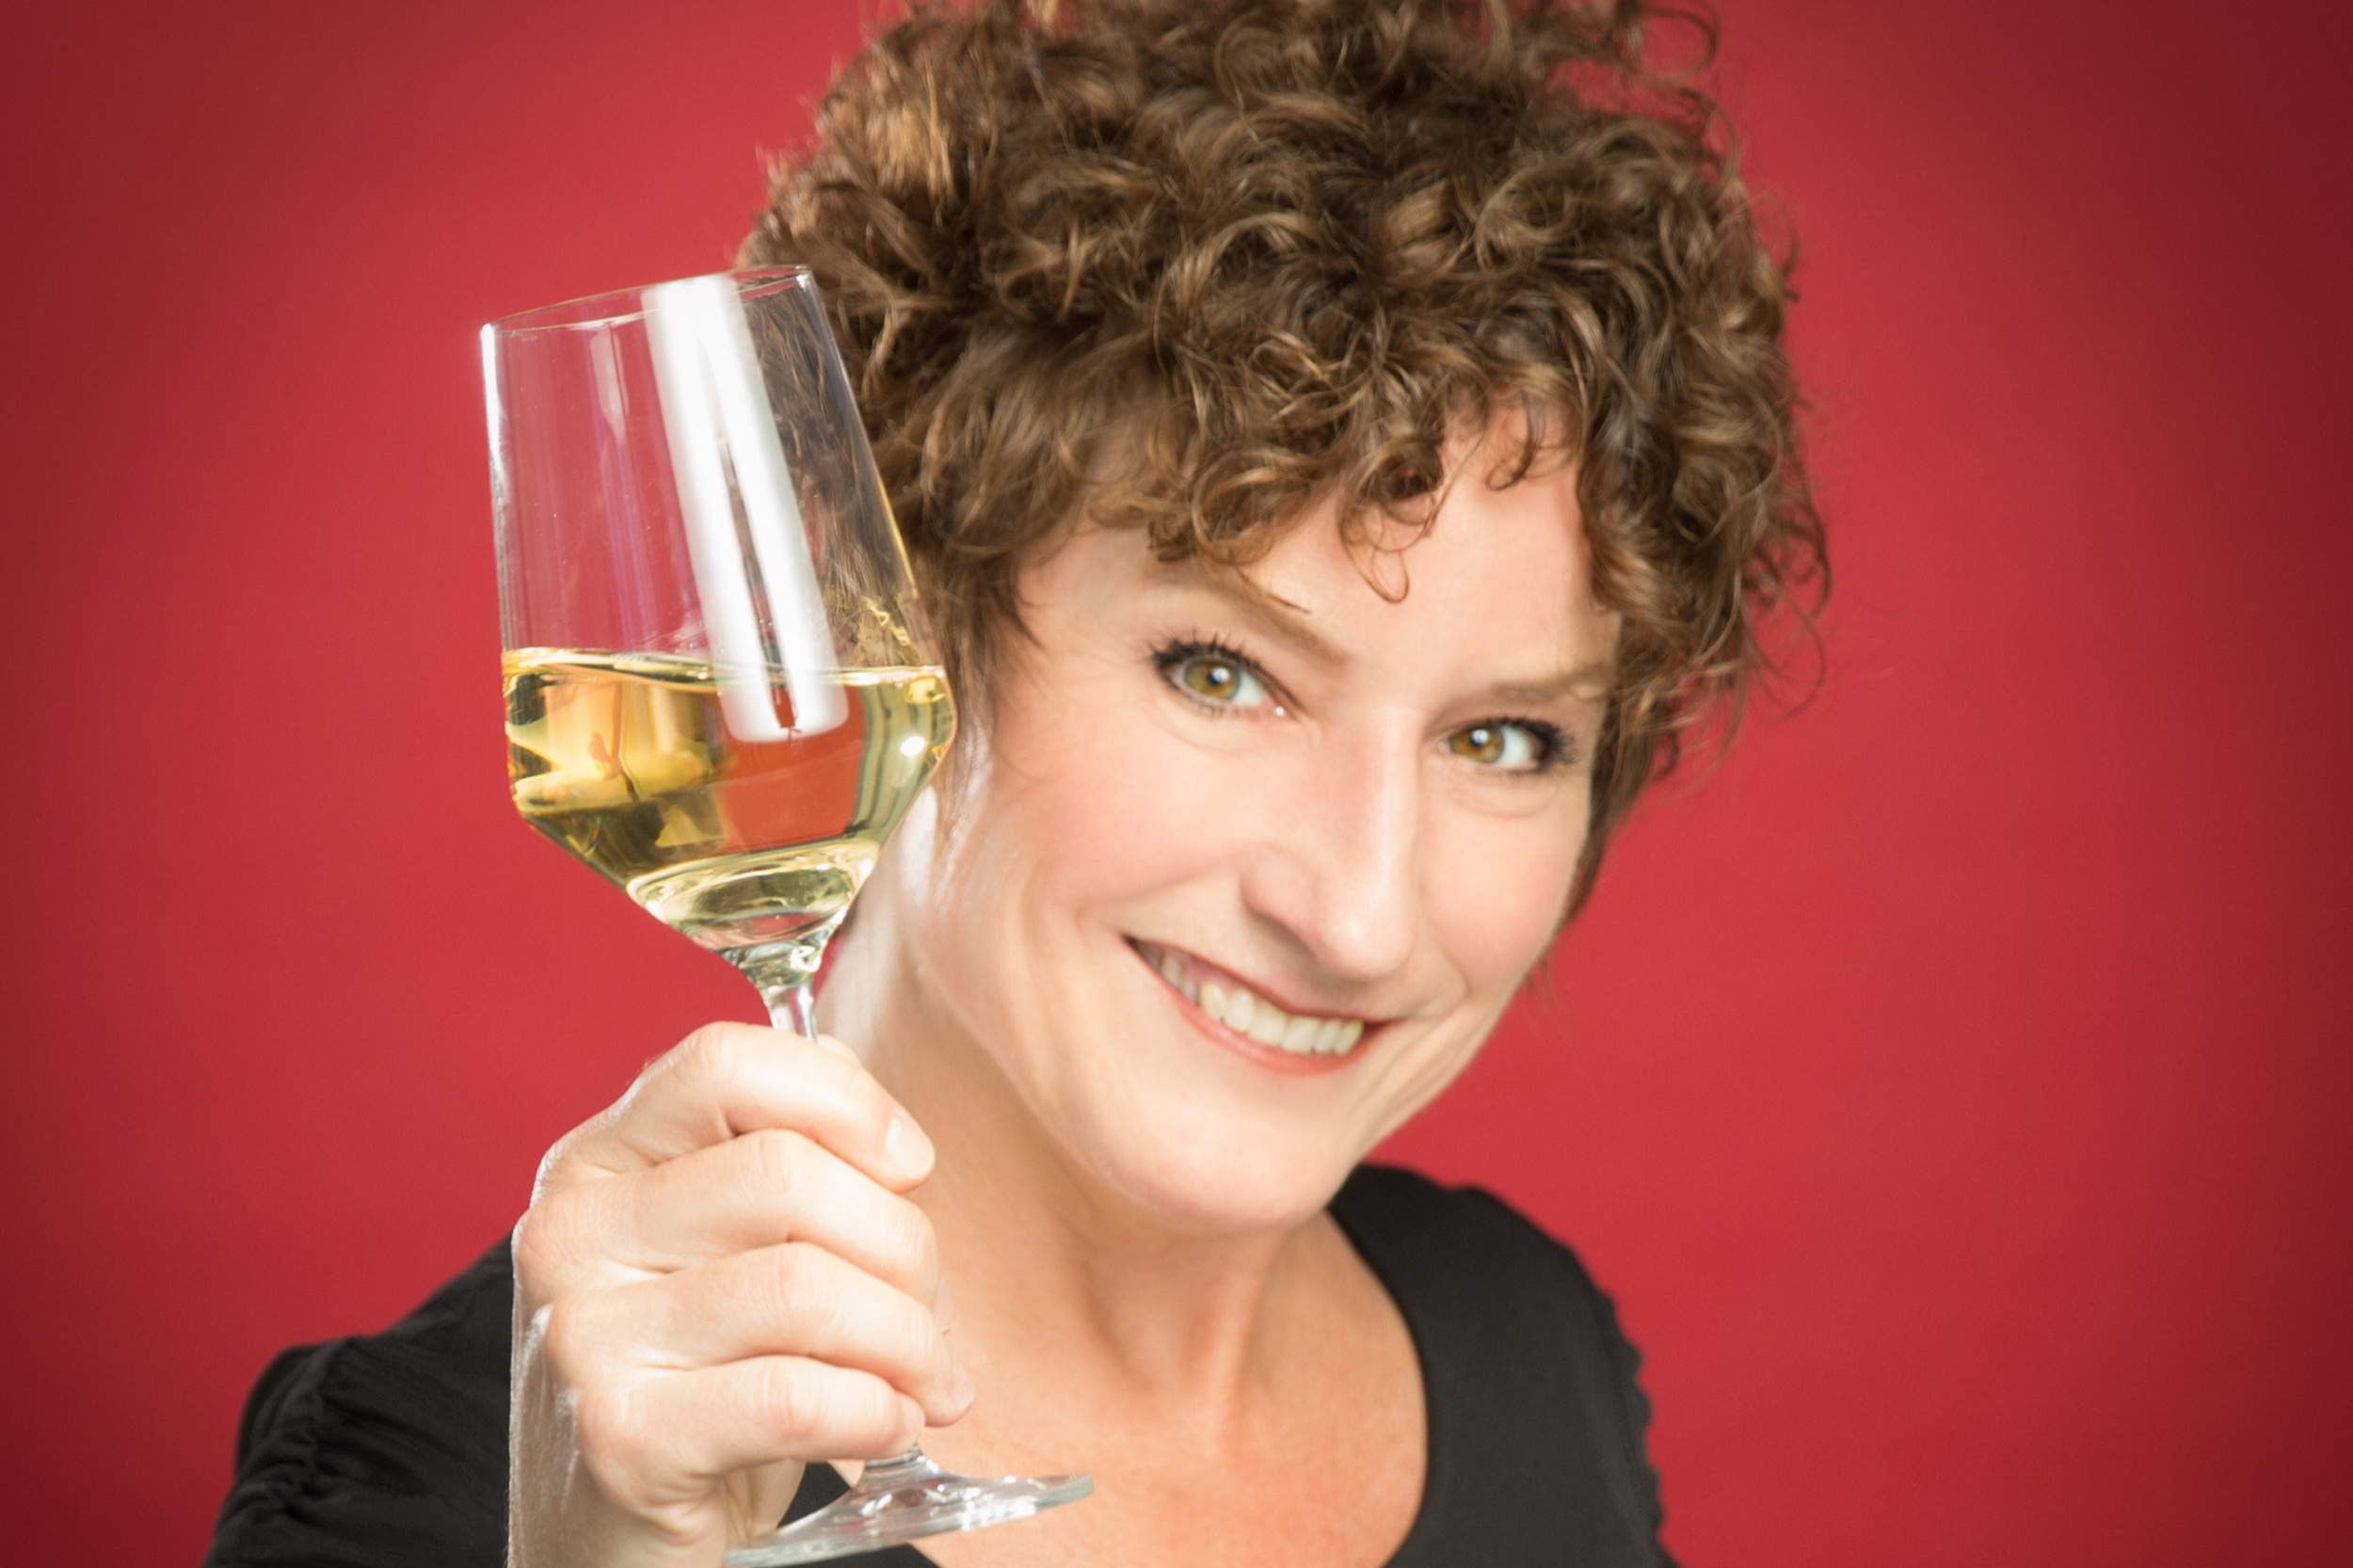 Denise Clarke    Denise is a PR consultant, providing communications strategies and programs for food, wine, travel and other clients. She is also a Certified Wine Educator and Certified Sommelier and holds an advanced certification from the Wine and Spirits Education Trust. She loves hosting private wine tastings and sharing knowledge about wines from around the world. An avid cyclist, Denise can be found smiling on her bike around town!